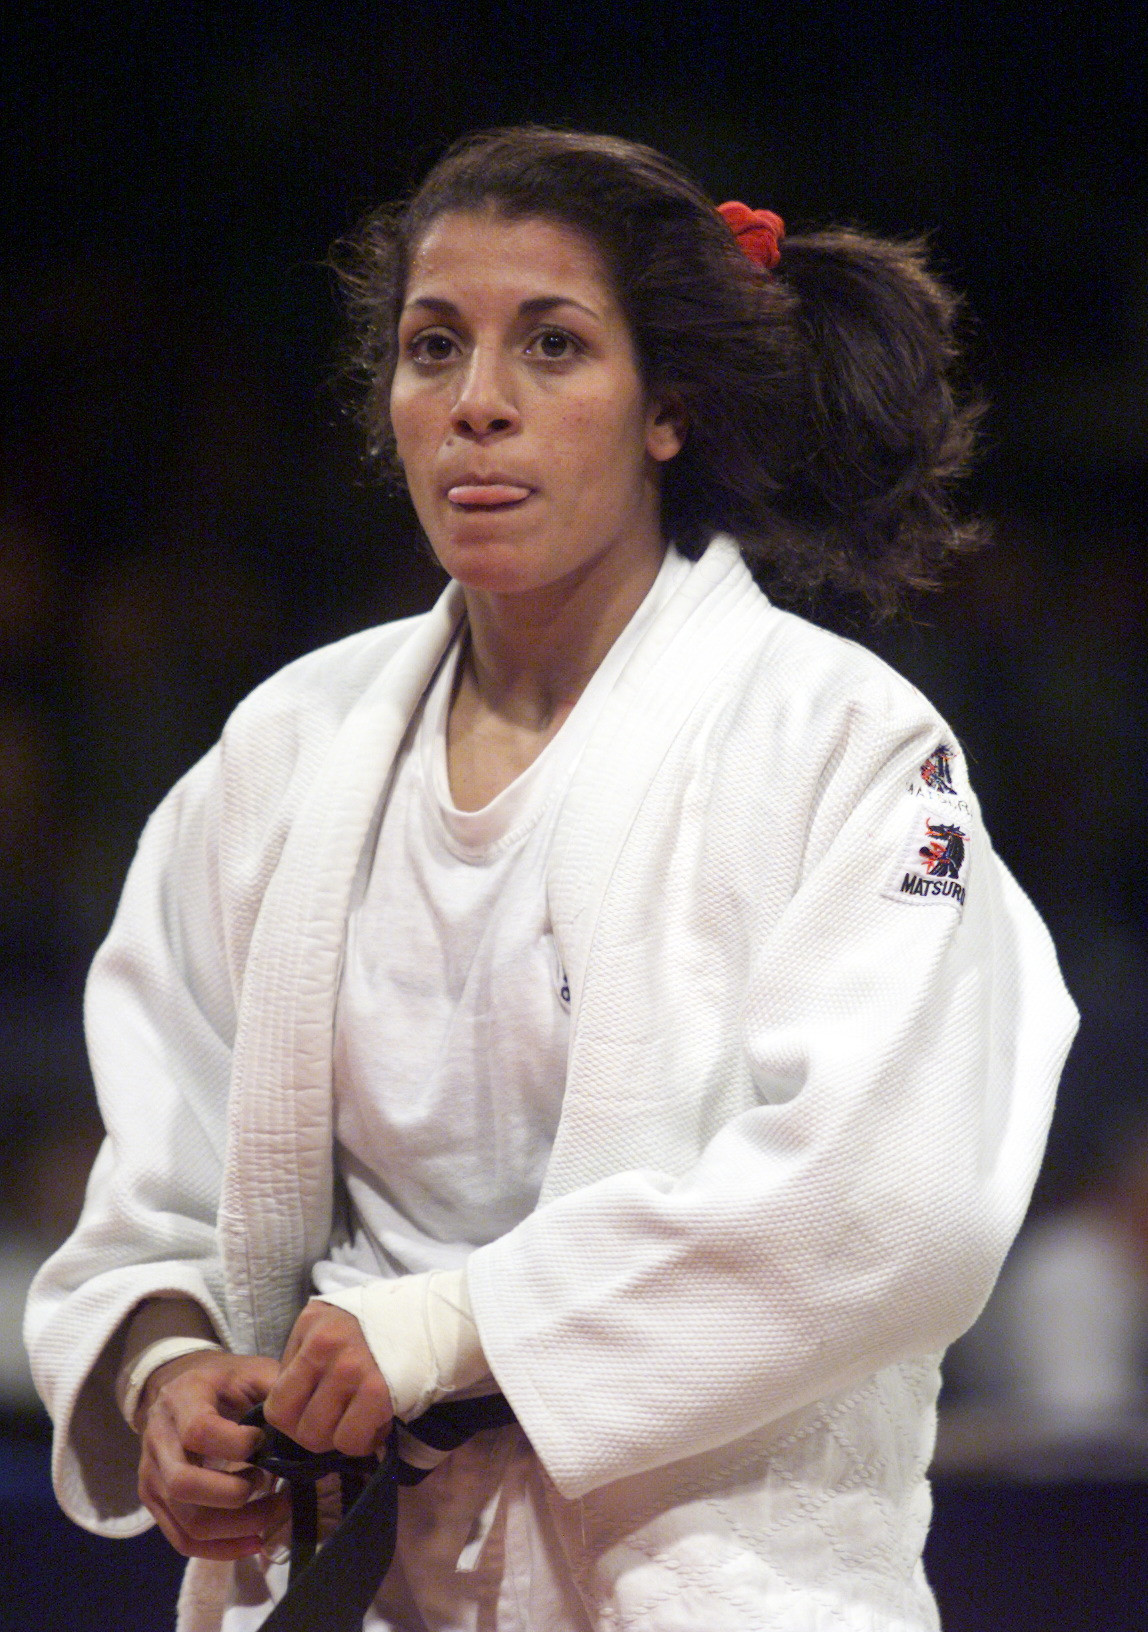 Salima Souakri became the first Algerian and Arab woman to compete in judo at the Olympics after competing at Atlanta 1996 ©Getty Images